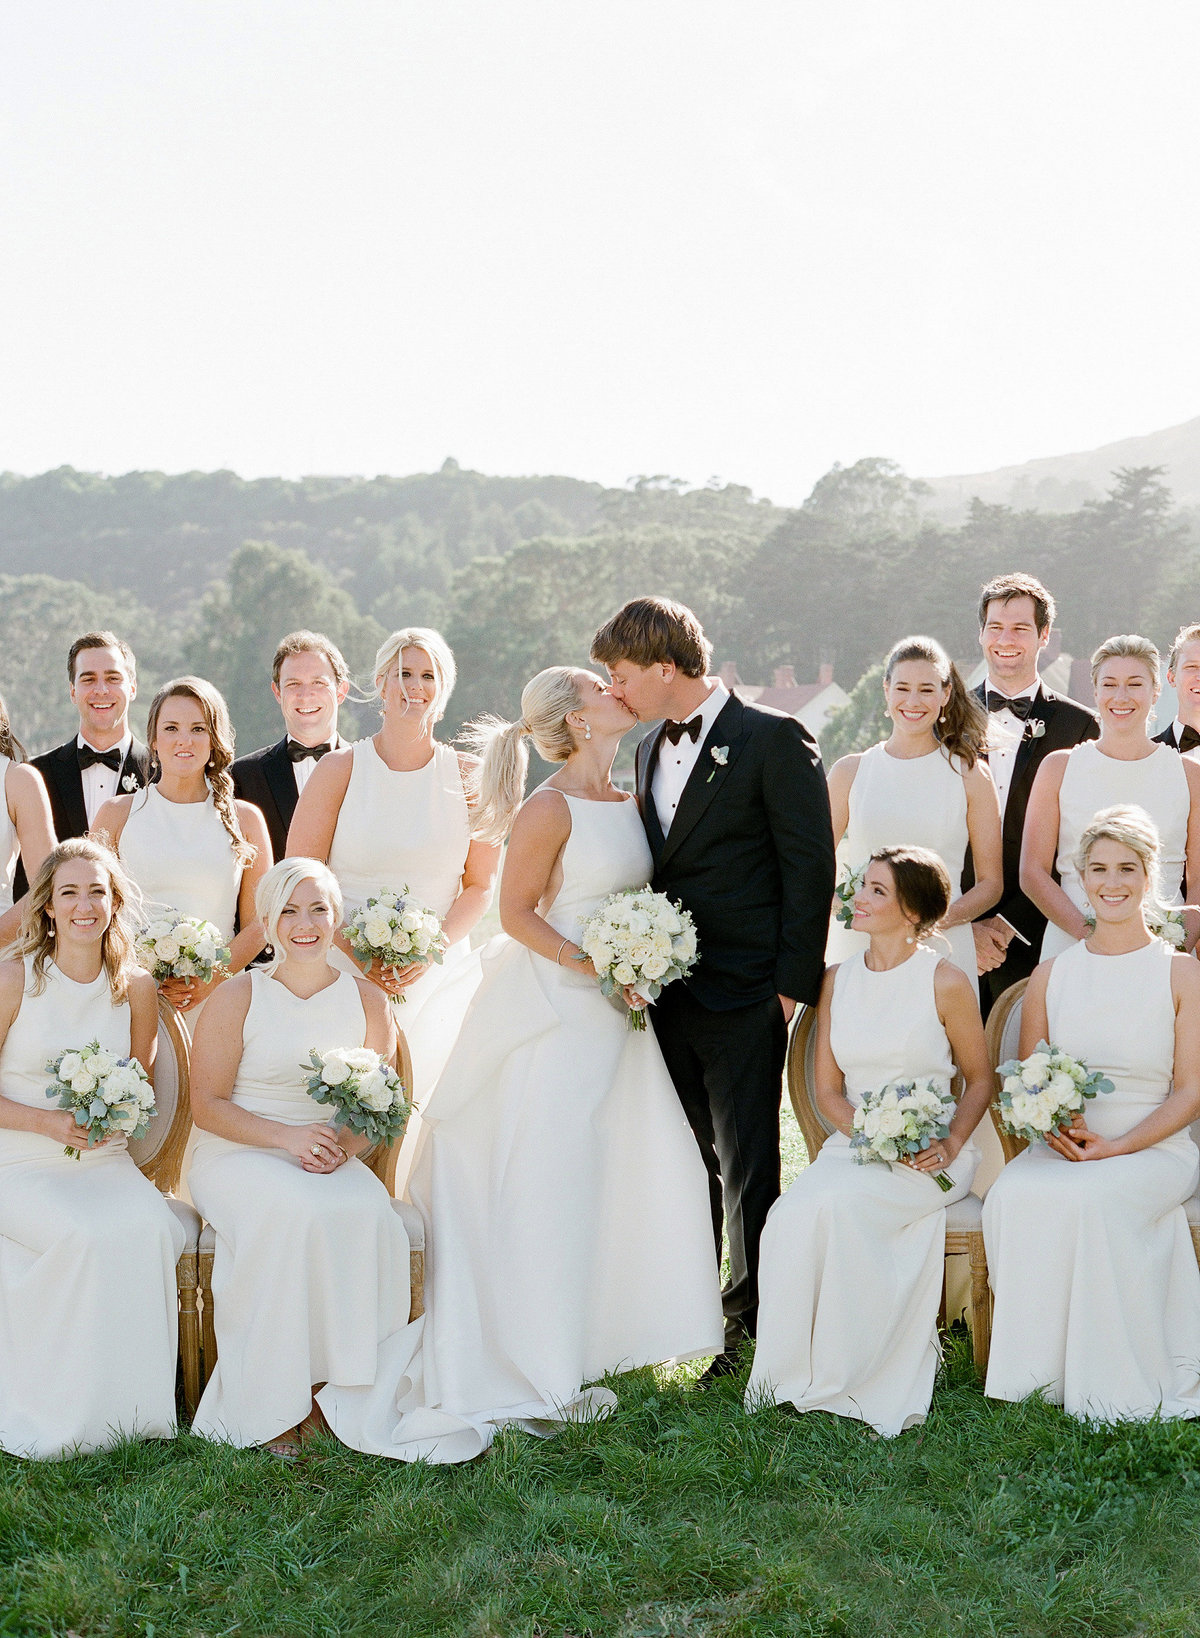 Bridal party for Cavallo Point wedding by Jenny Schneider Events.